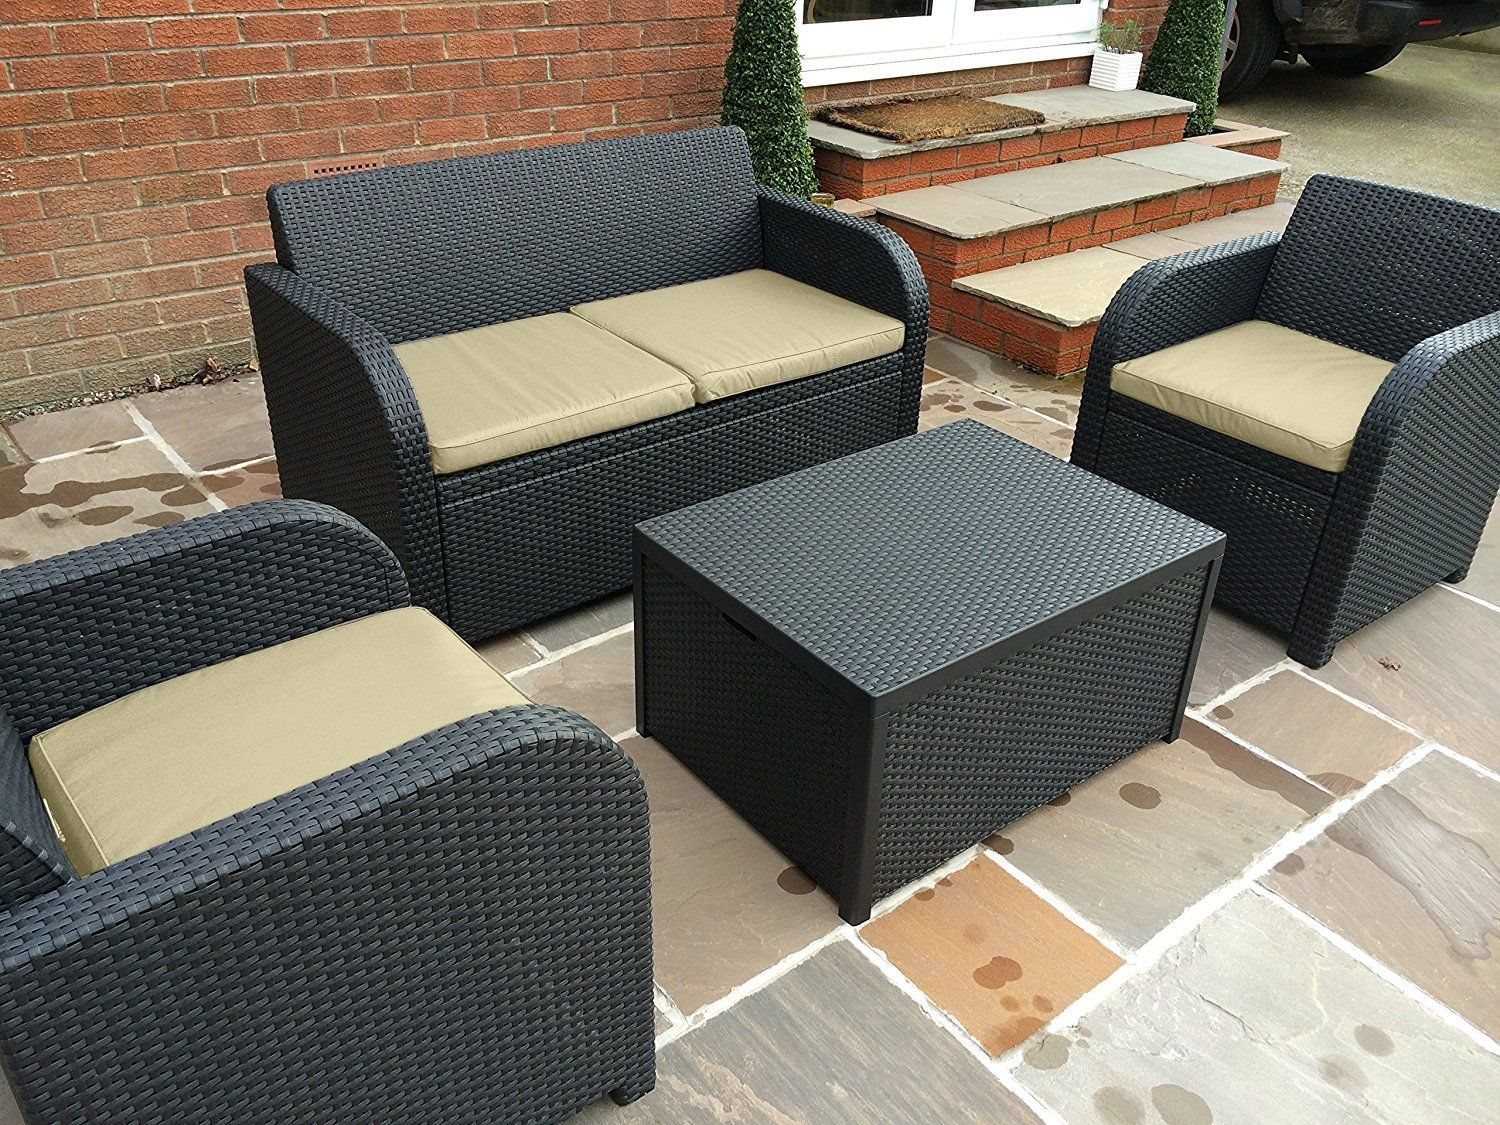 Garten Lounge Cube Family Keter Allibert Carolina Lounge Set With Cream Cushions In Anthracite